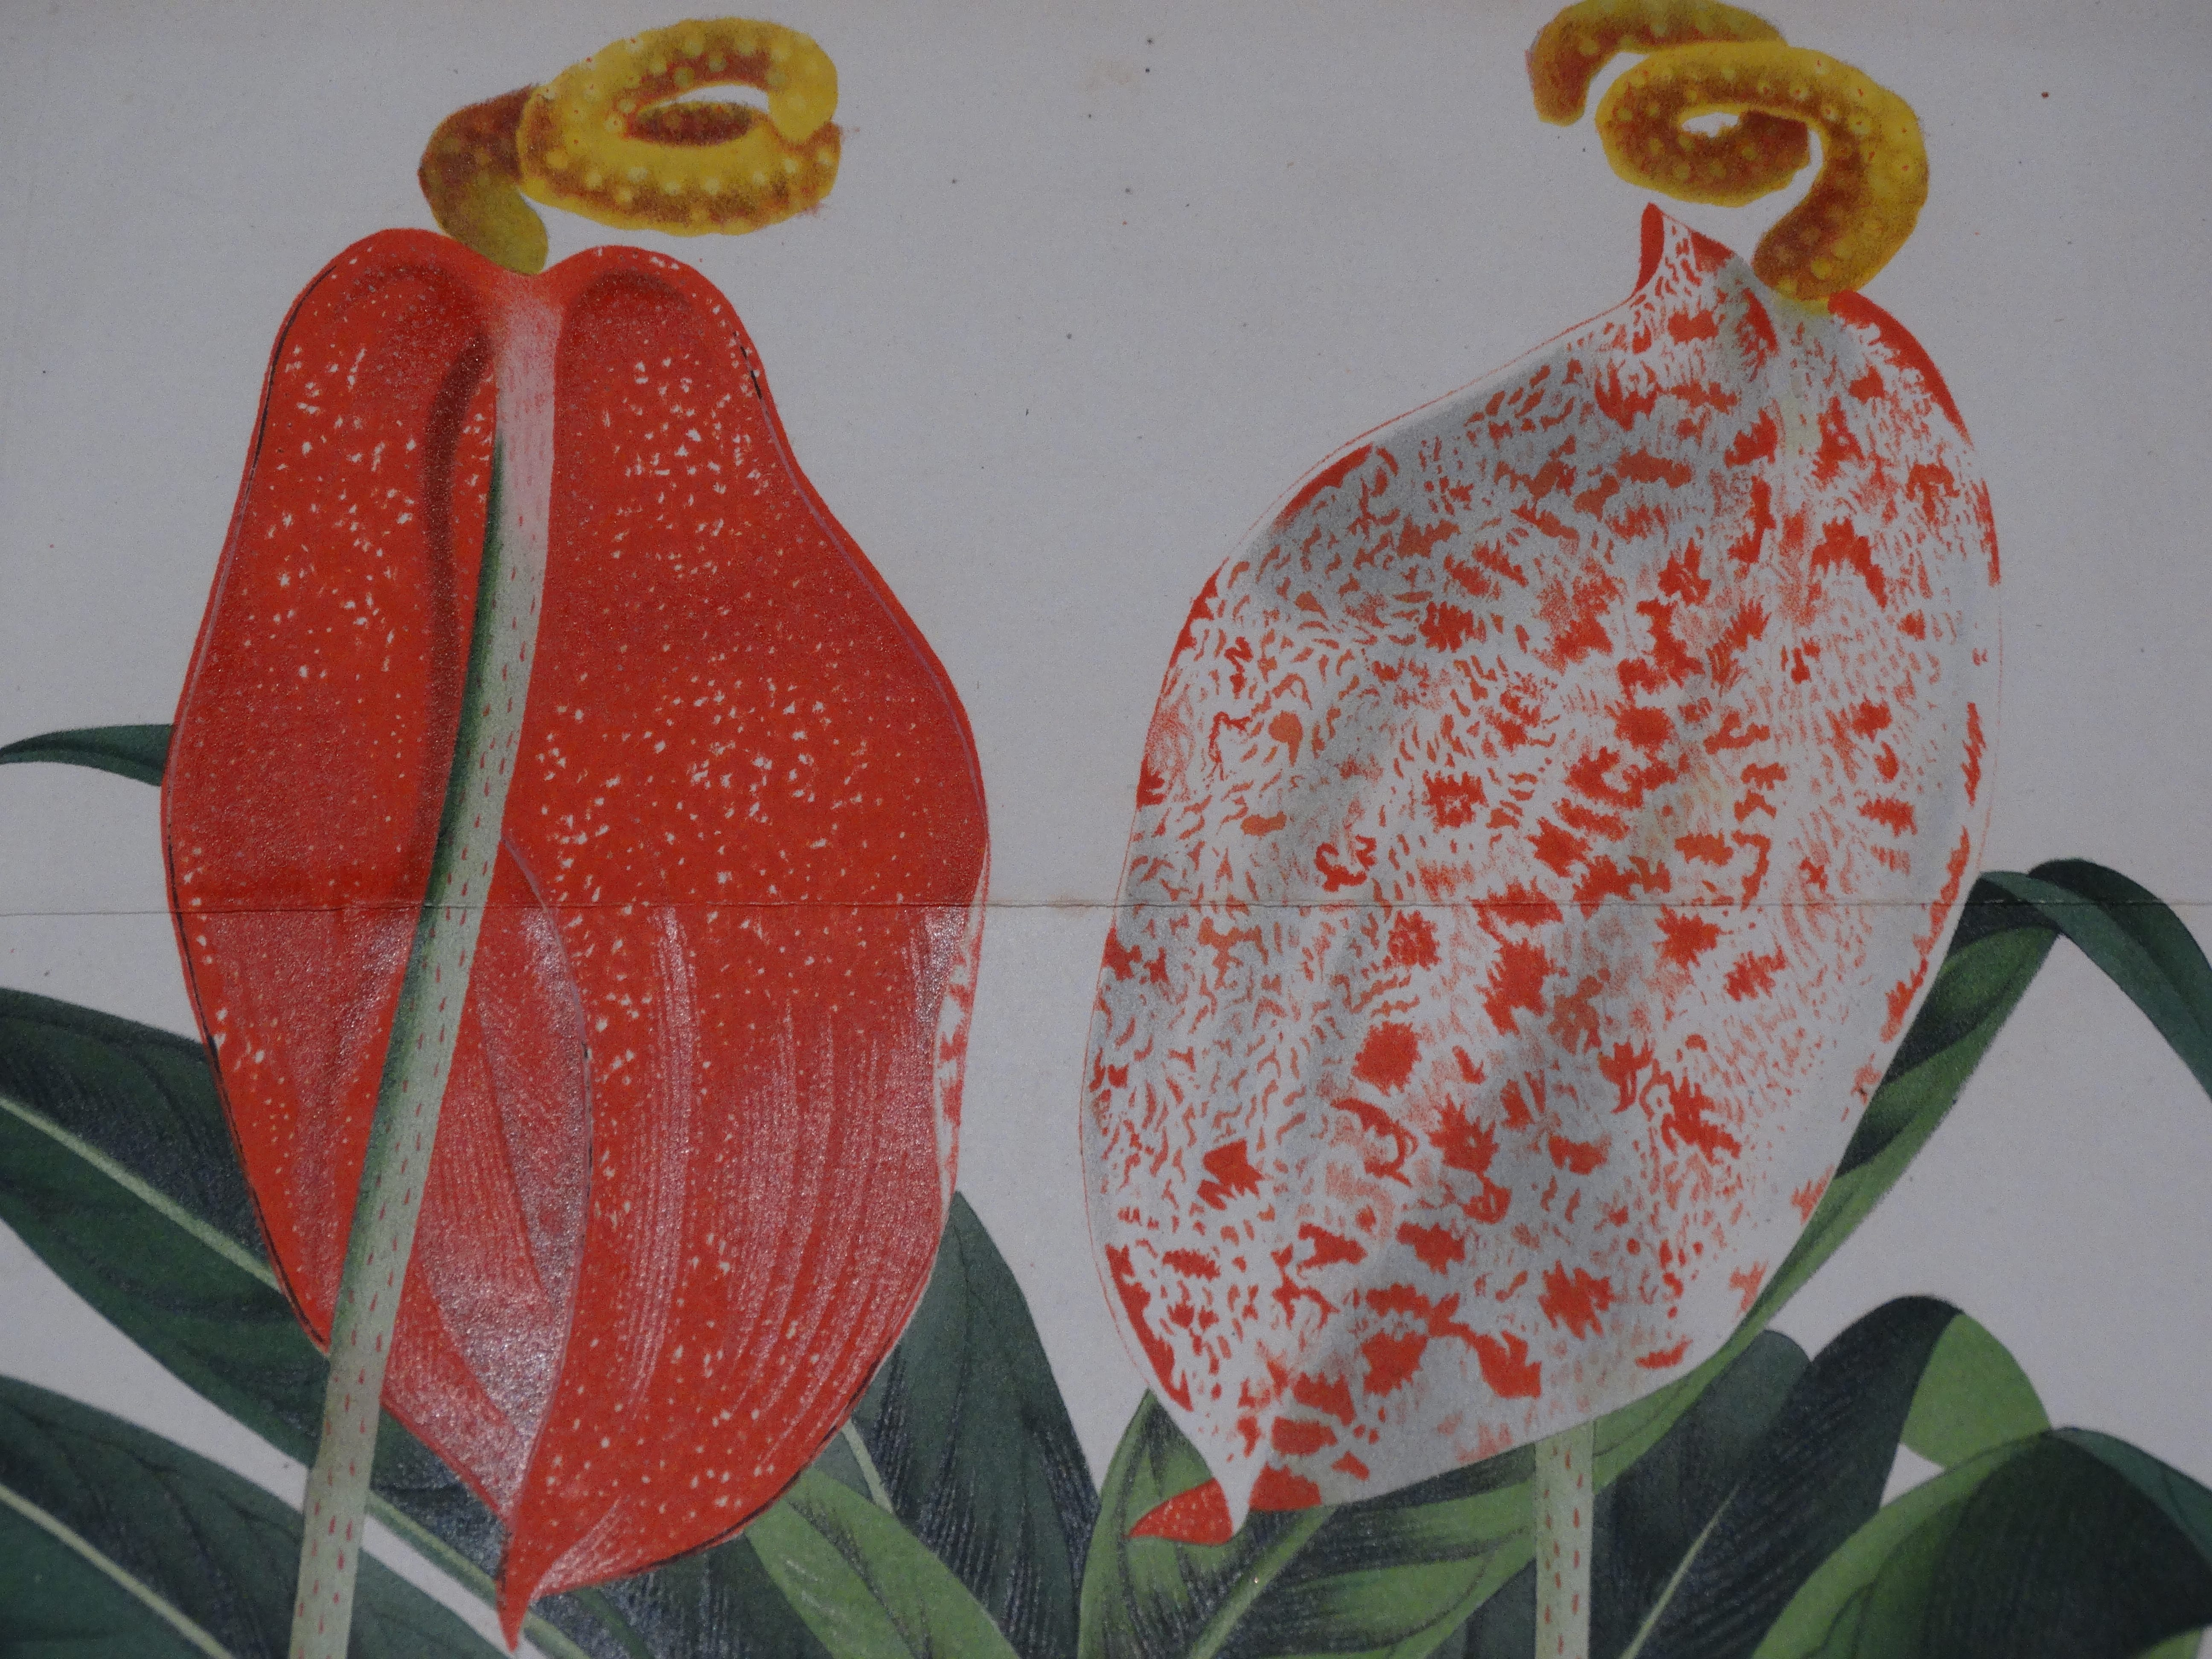 Anthurium Antique Engravings and Lithographs